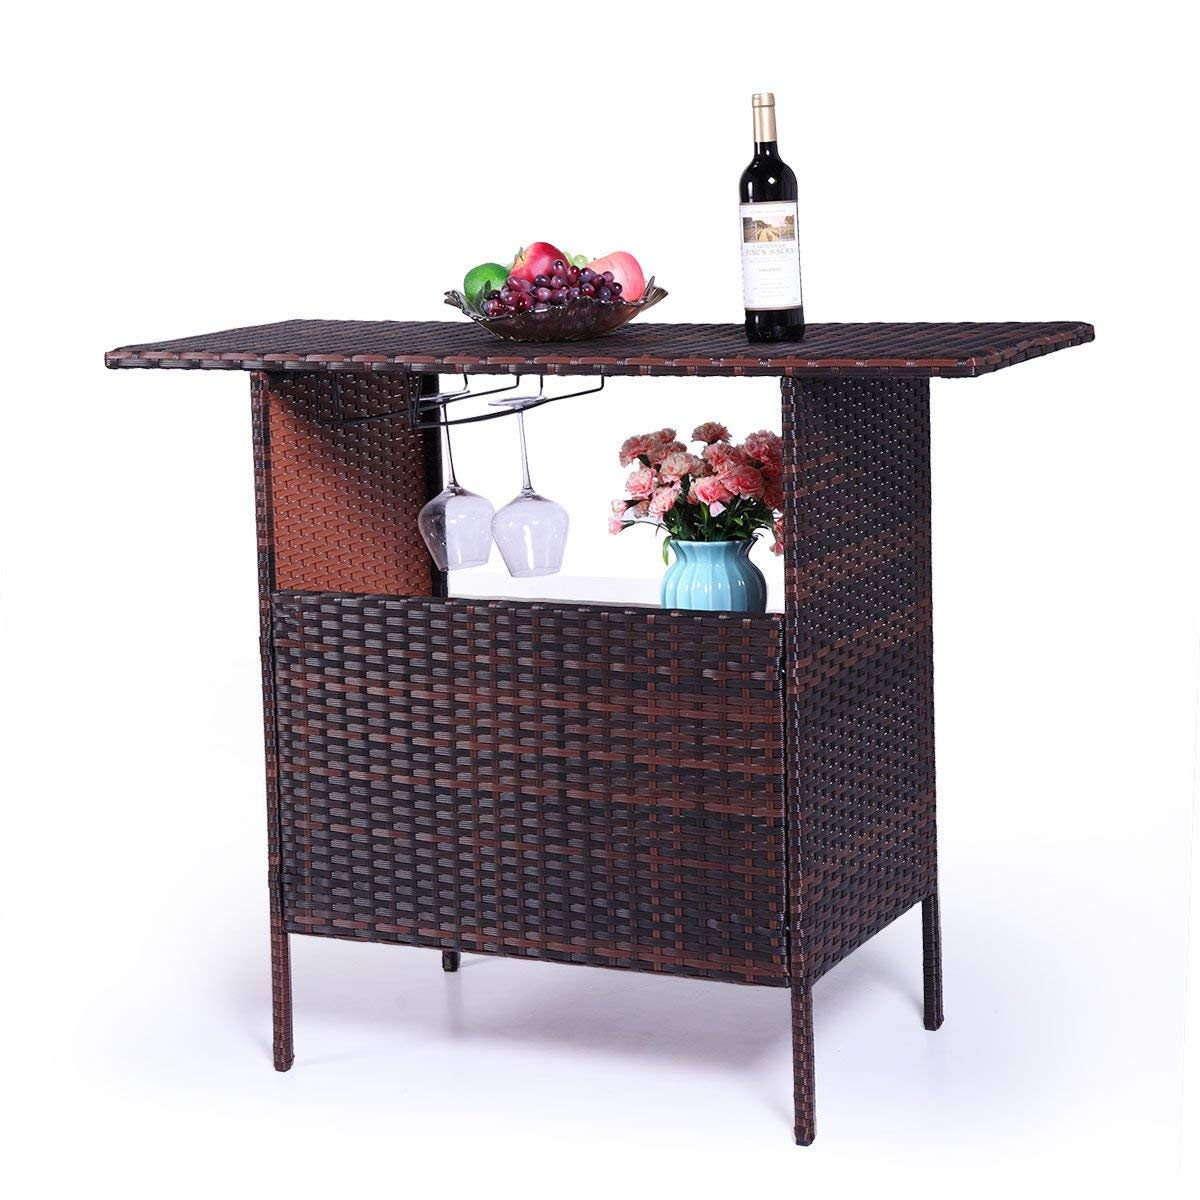 Lpha' Table Serving Outdoor Patio Rattan Wicker Bar Counter outdoor living space, such as patio, garden, backyard, lawn and pool side Table W/2 Steel Shelves Garden Patio